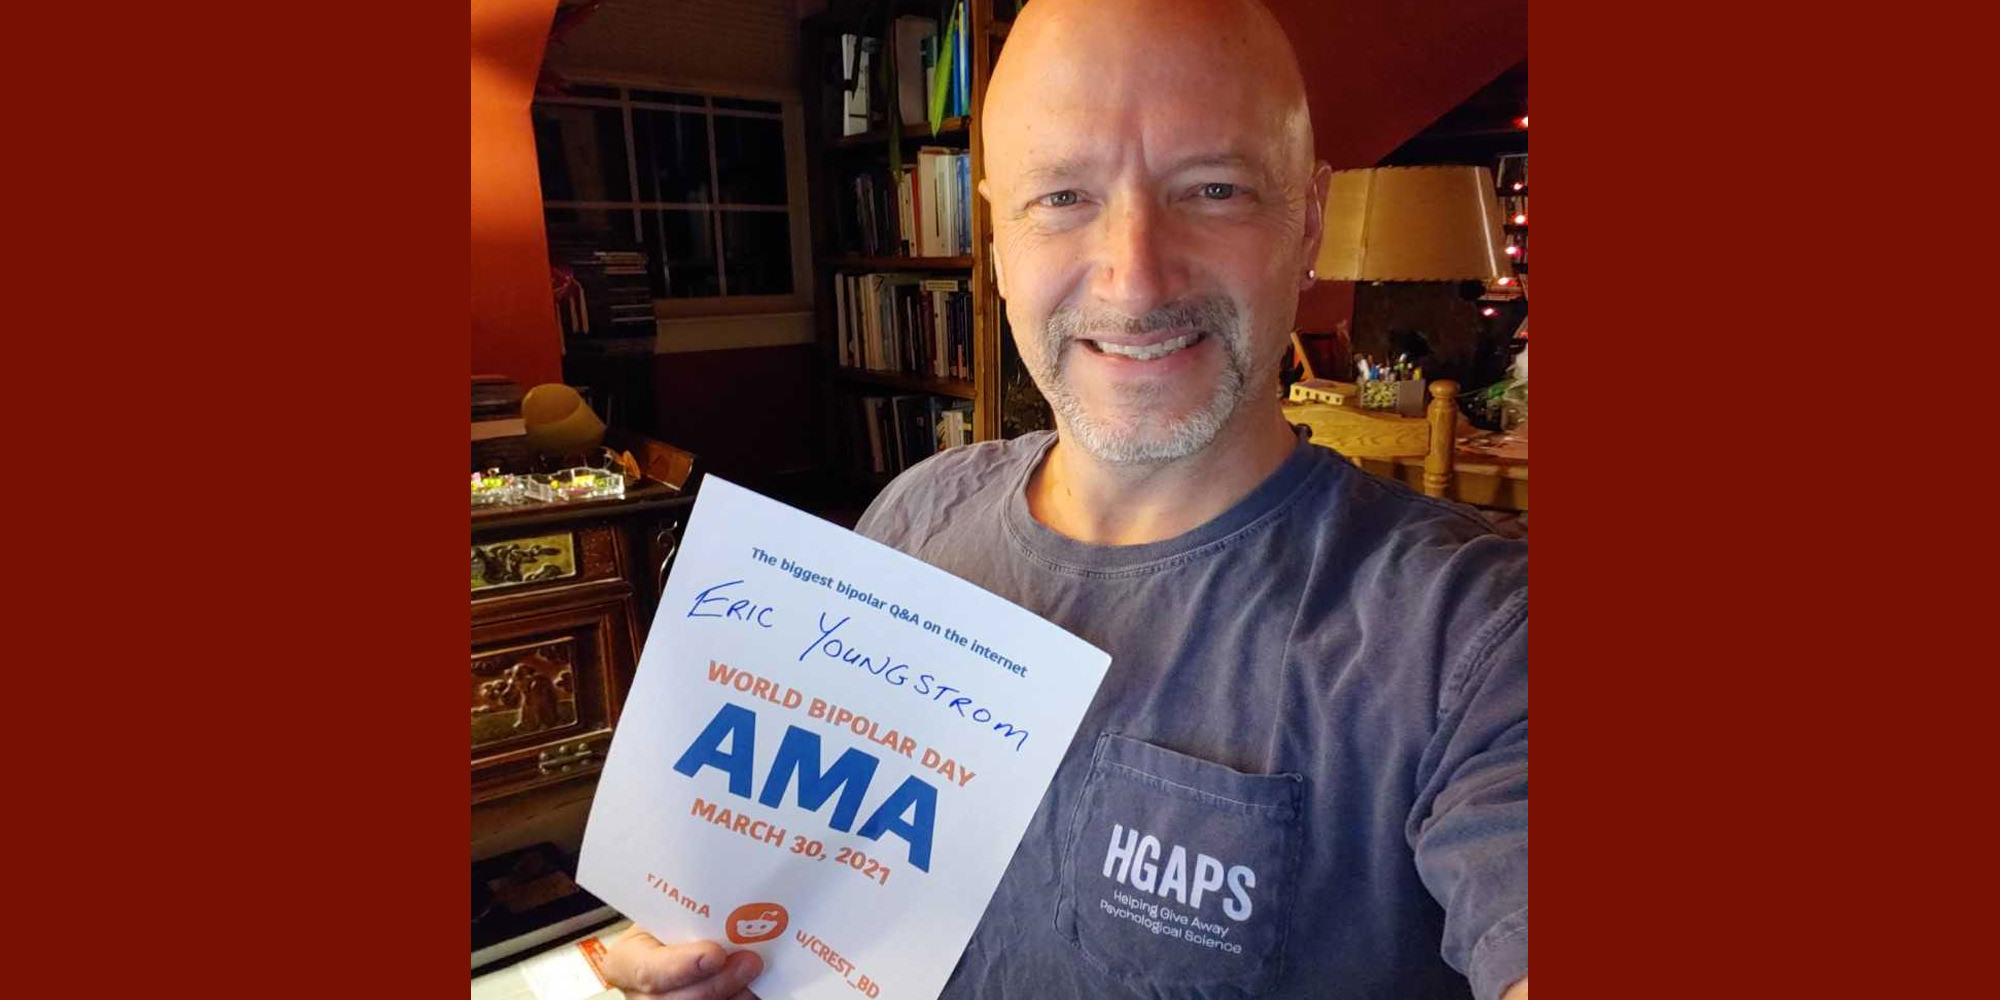 Eric is in a room in his home that looks like it might be an office, with reddish and white walls, dark-stained furniture, and a bookshelf. He is Caucasian and bald with a short greyish beard, and is wearing a grey shirt with HGAPS written on the pocket. He is holding the proof sign.